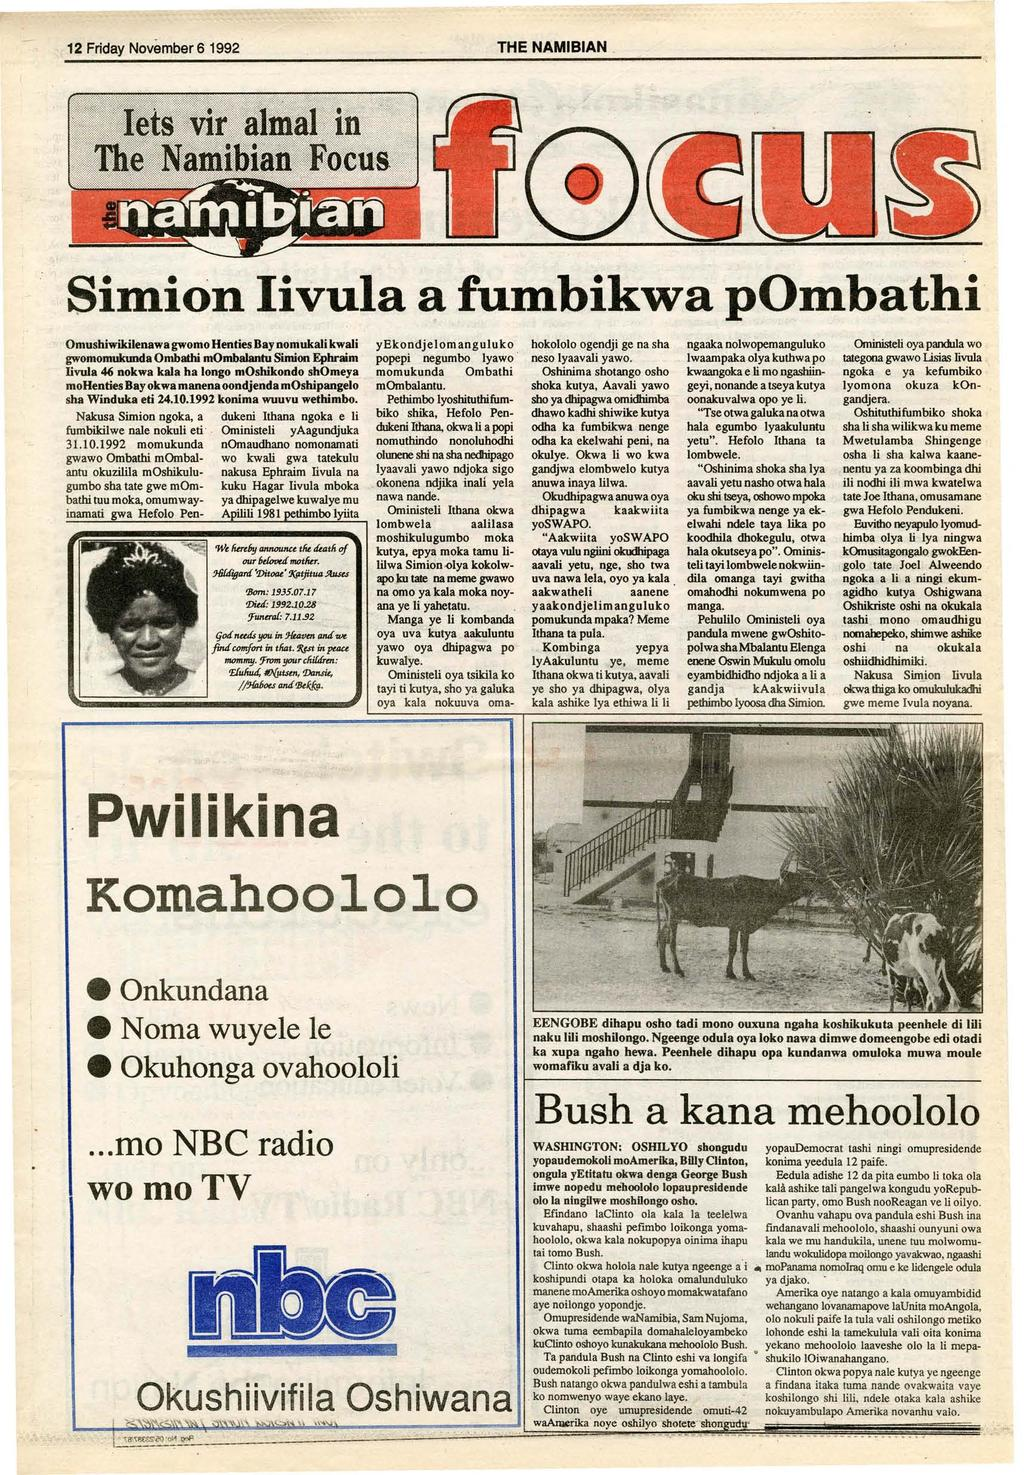 12 Friday November 6 1992 THE NAMIBIAN _ Simion Iivula a fumbikwa pombathi Omushiwikilenawa gwomo Henties Bay nomukali kwali gwomomukunda Ombathi mombalantu Simion Ephraim Iivula 46 nokwa kala ha